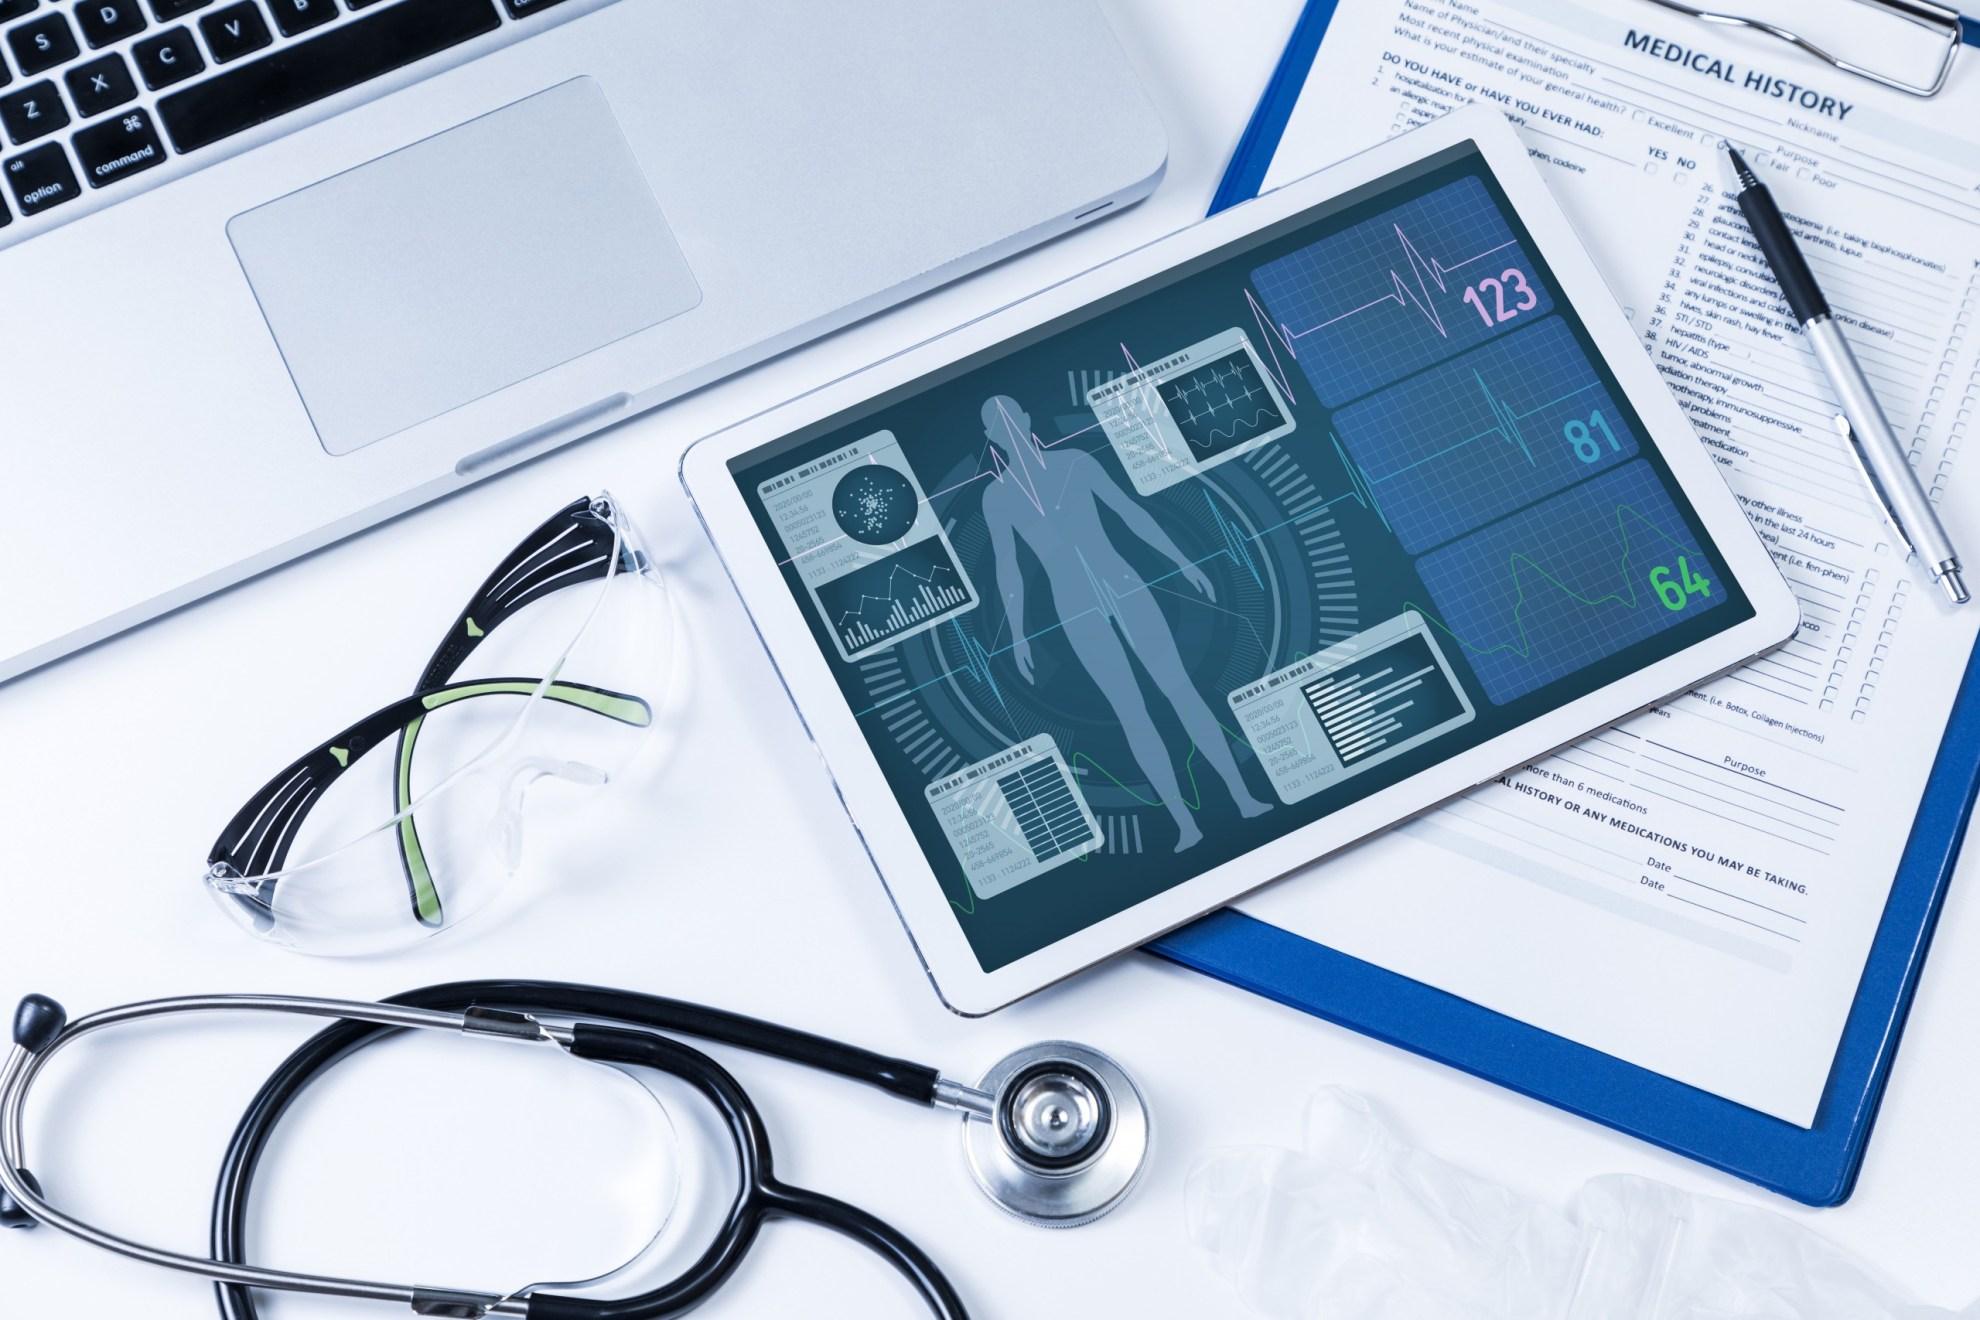 Vital signs on an iPad and medical questionnaire as part of a mixed-mode study.